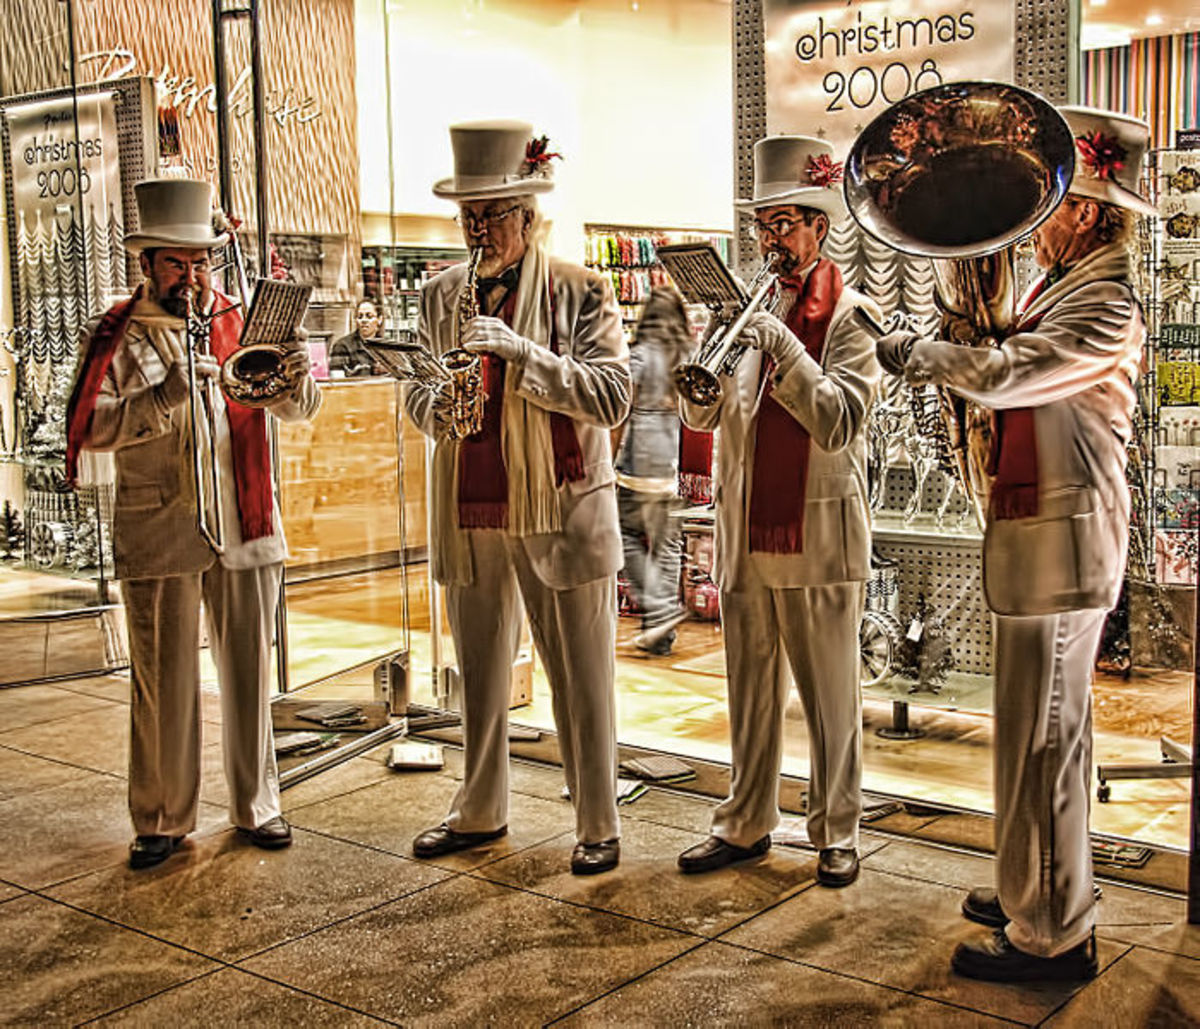 A band performs at the Americana in Glendale, California